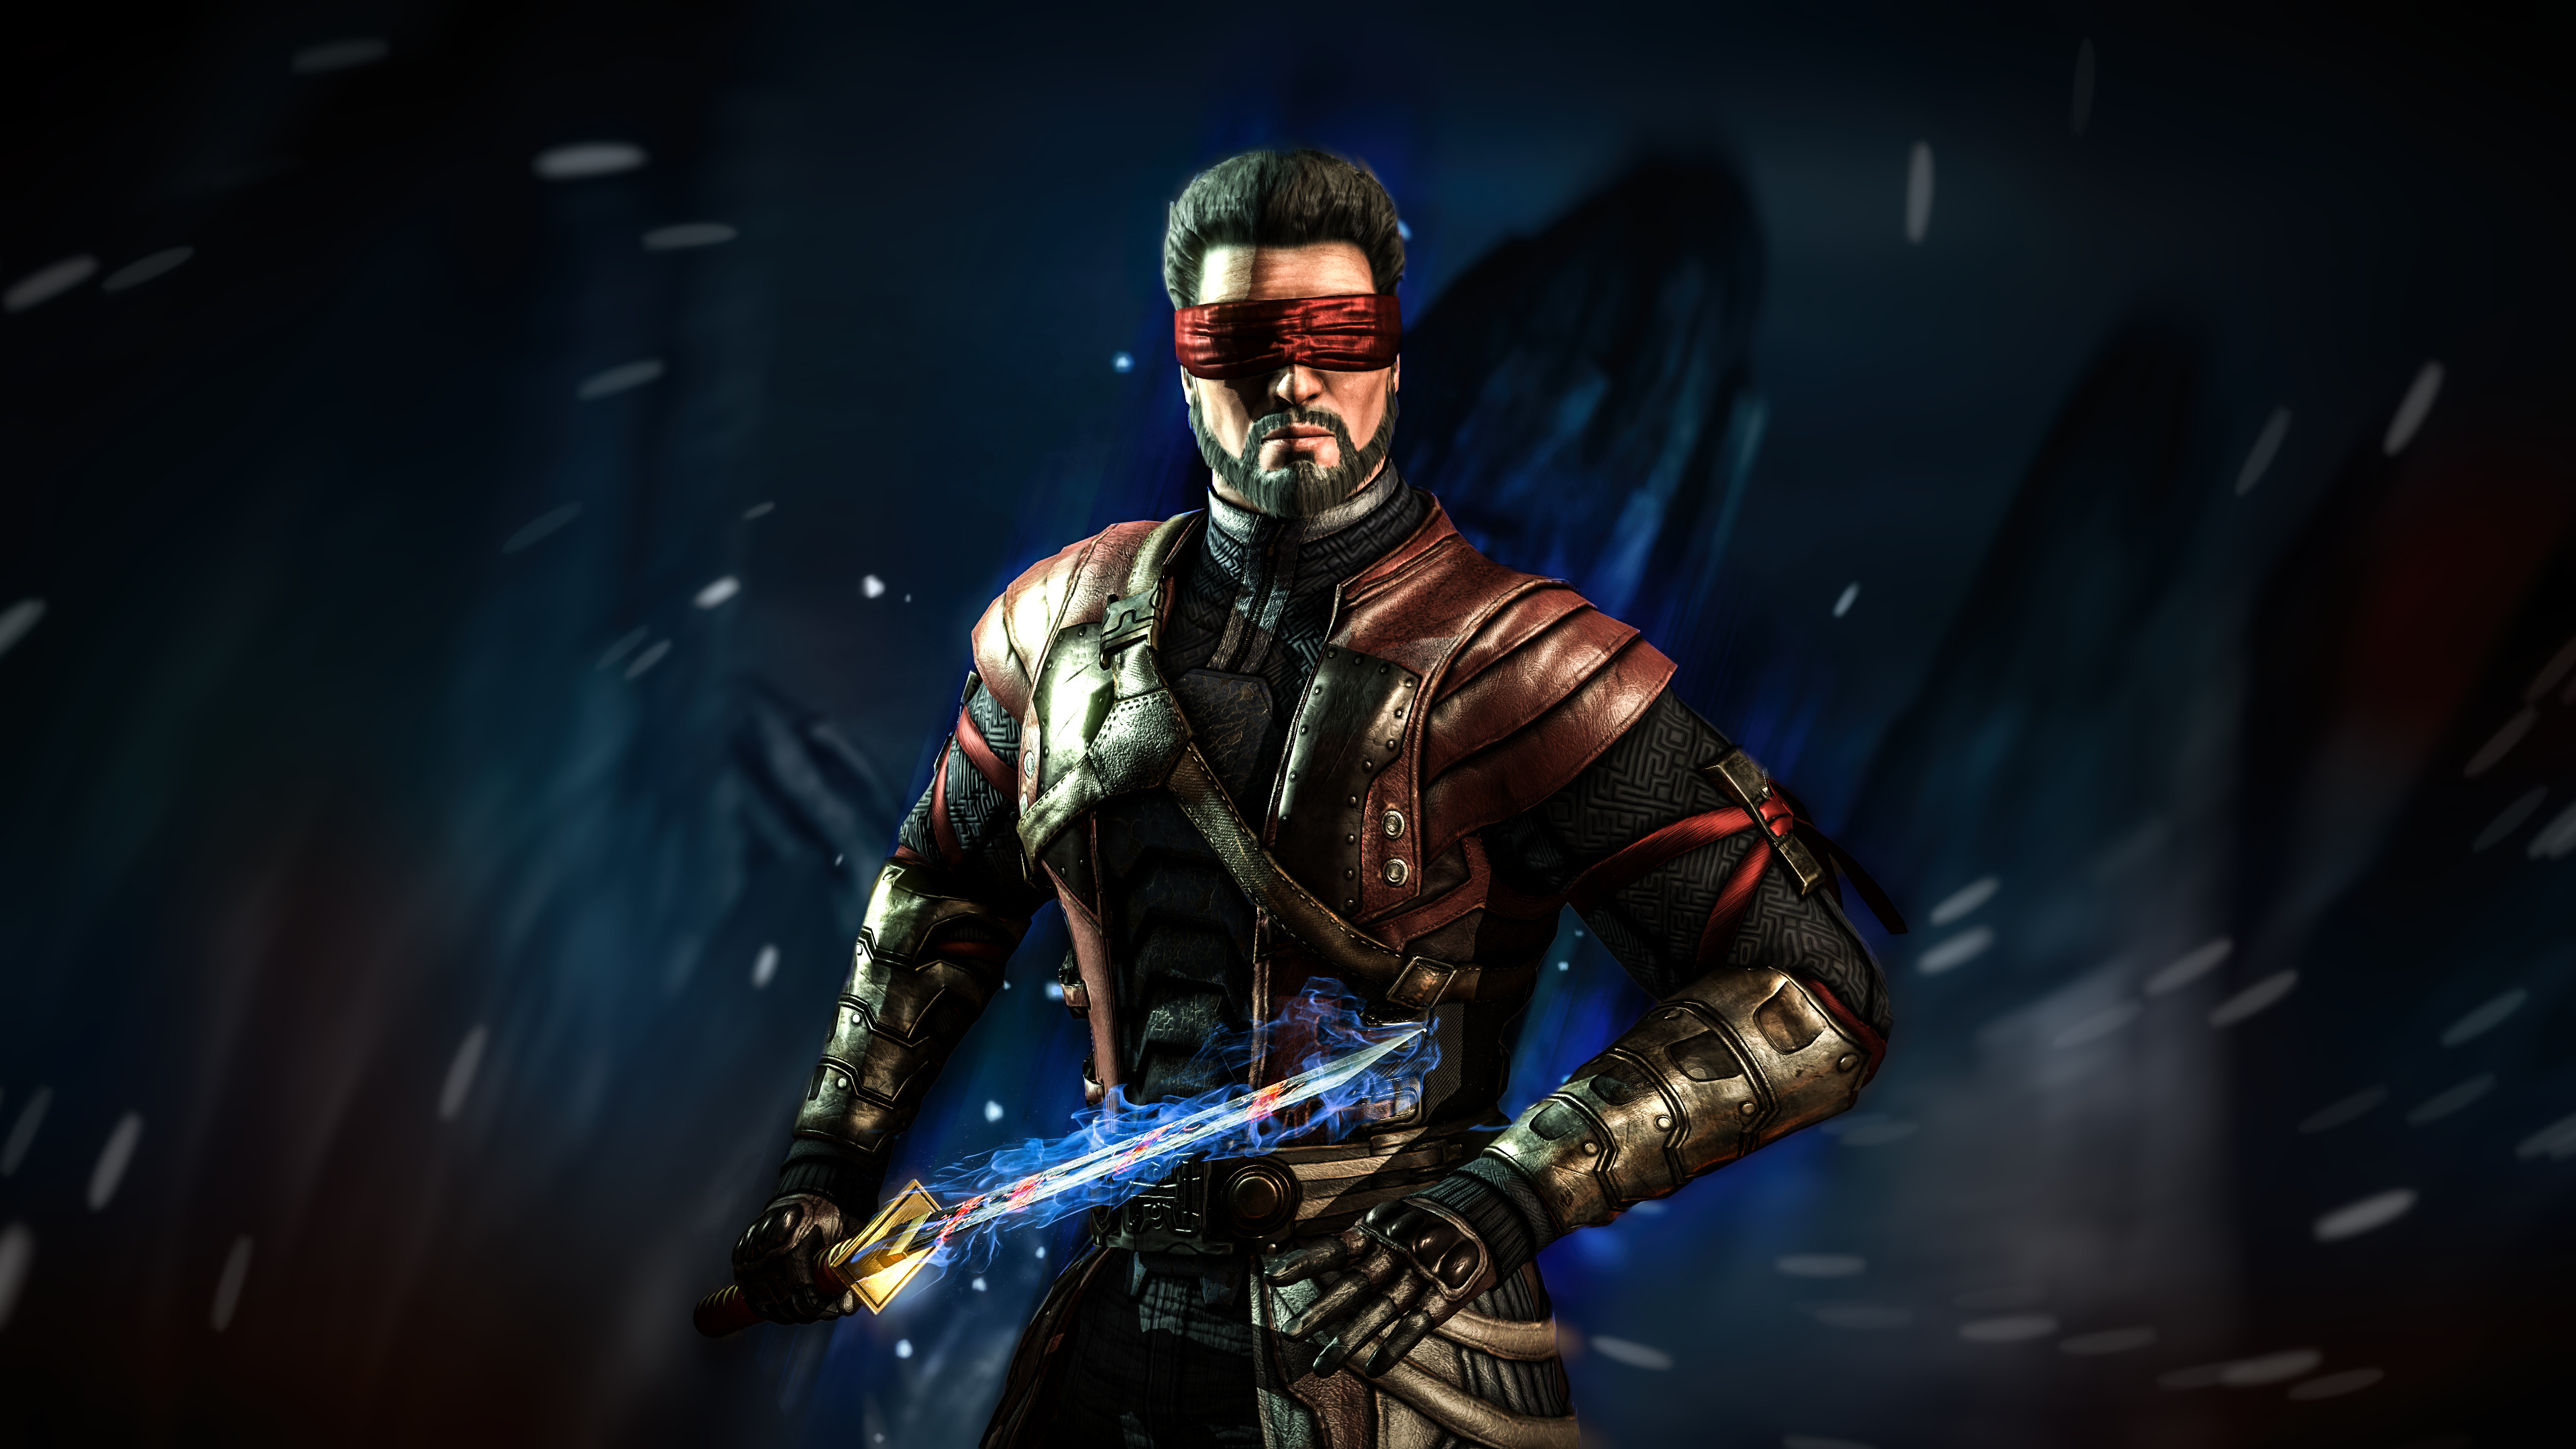 Mortal Kombat X Scorpio 3d Cool Video Games Wallpapers: Mortal Kombat Kitana Wallpaper (64+ Images